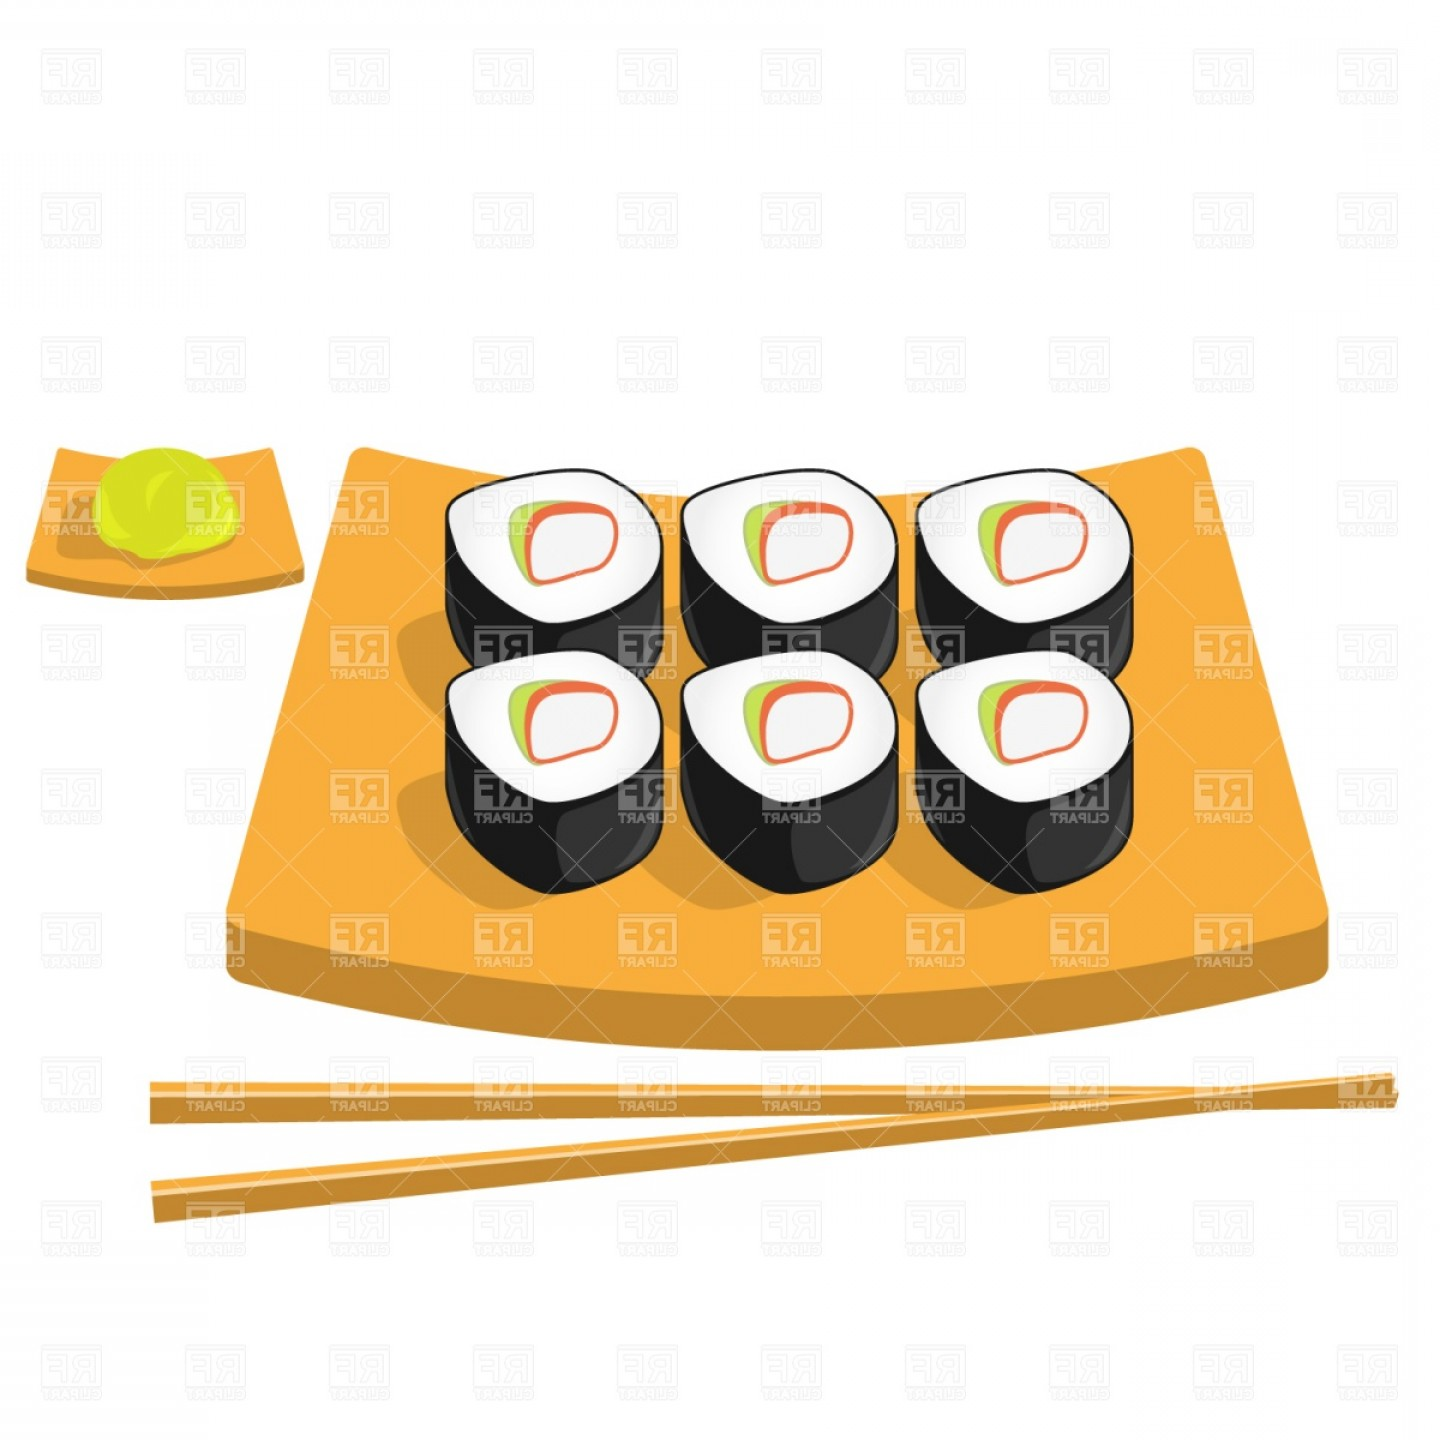 Sushi Vector Art: Chopsticks Wasabi And Roll Sushi Vector Clipart